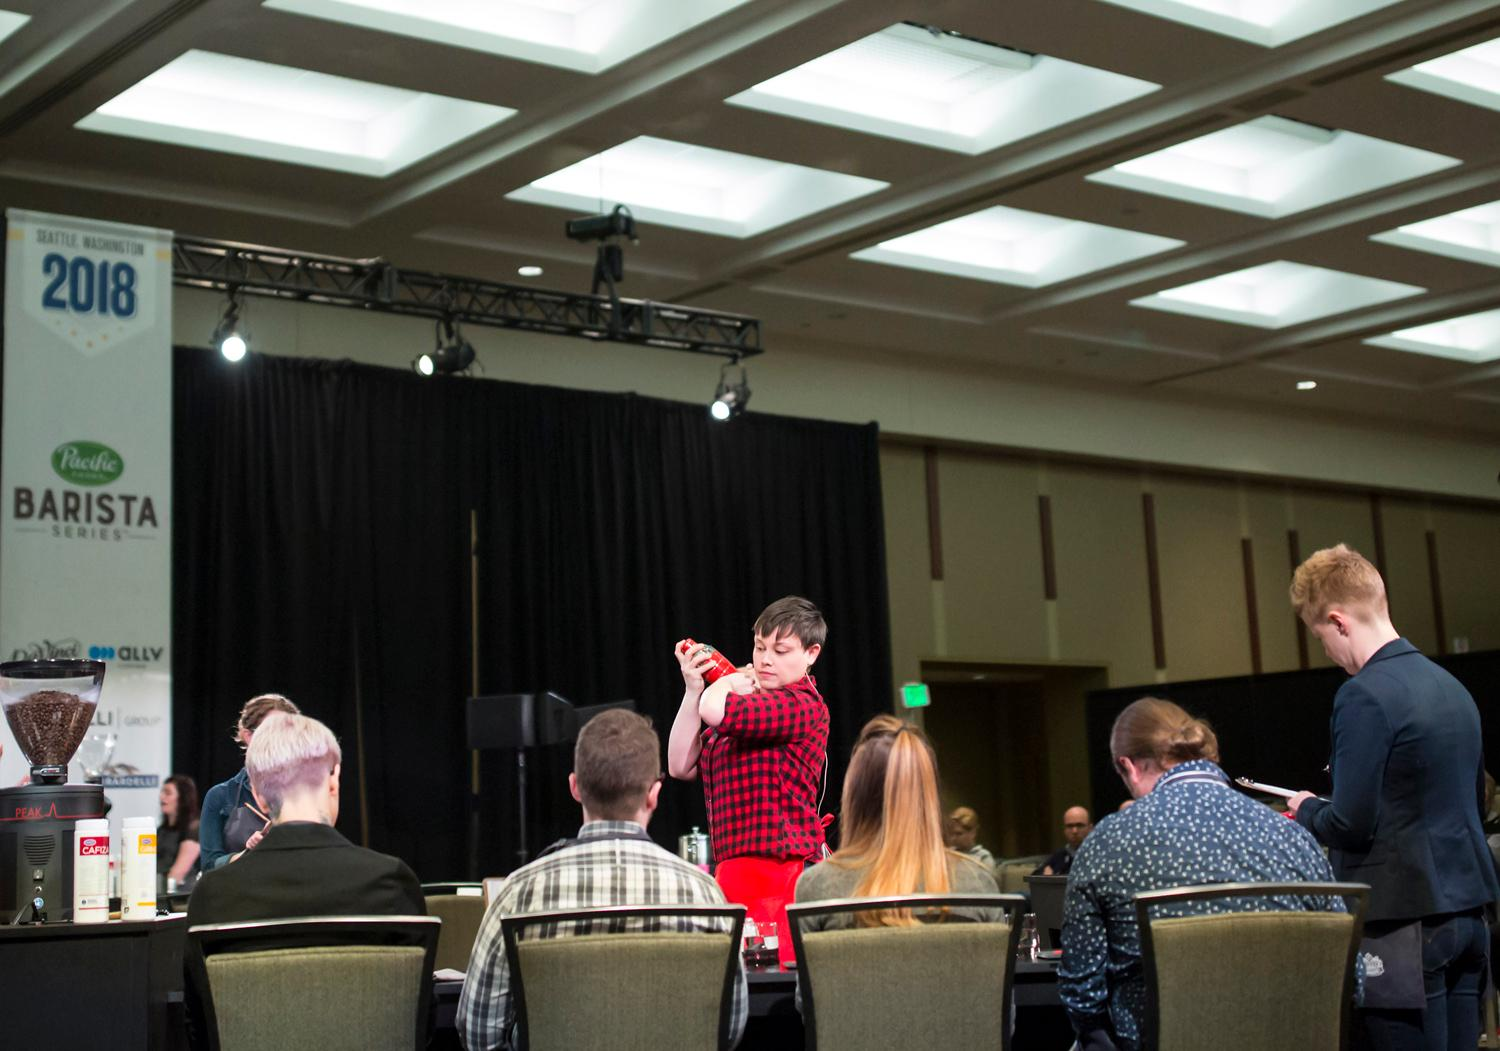 After two separate rounds of qualifying events in 10 different cities, 36 competitors proved their worth to compete in the 2018 U.S. Barista Coffee Champions at the Washington State Convention Center. The competition will span the course of the weekend. (Sy Bean / Seattle Refined)